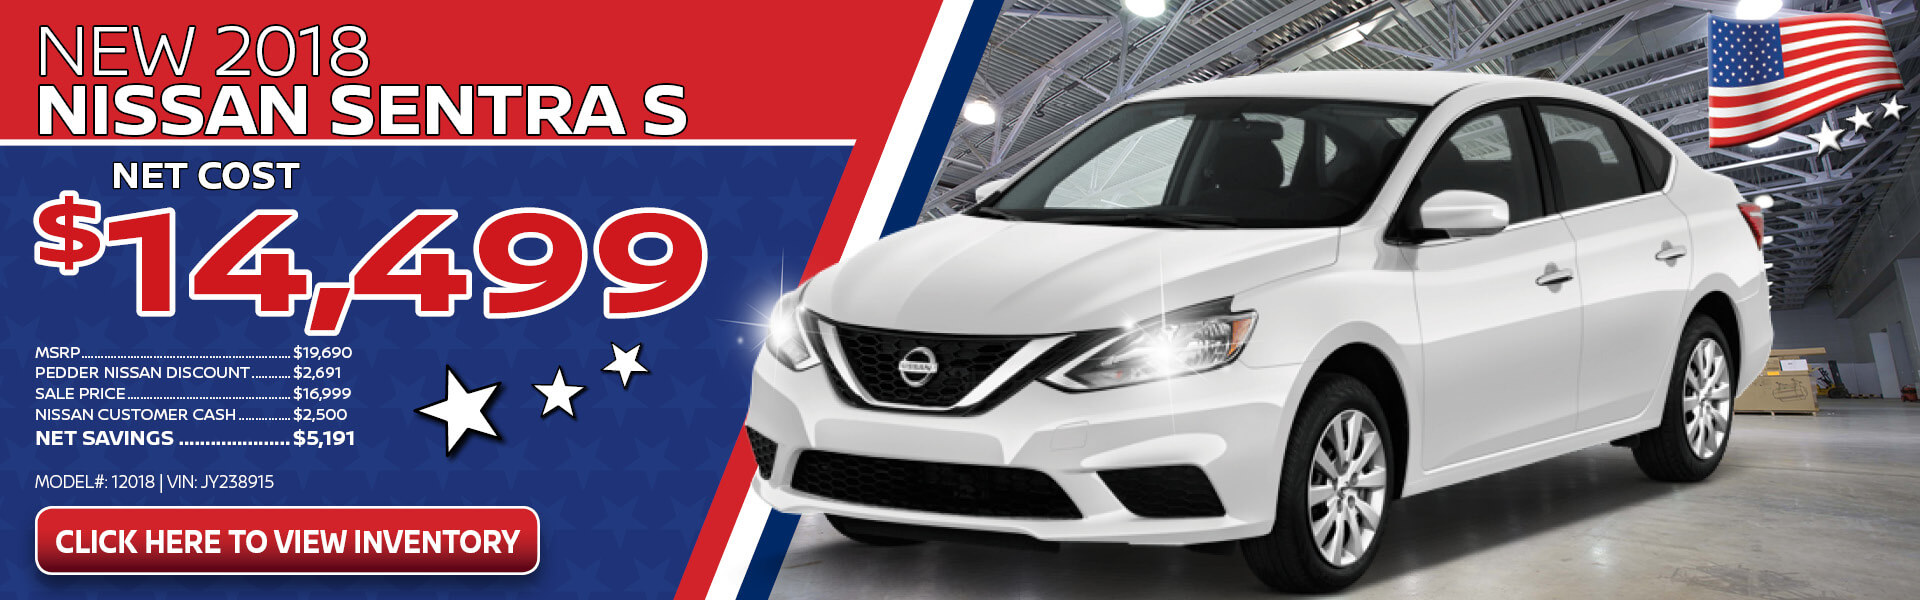 Nissan Sentra $14,499 Purchase